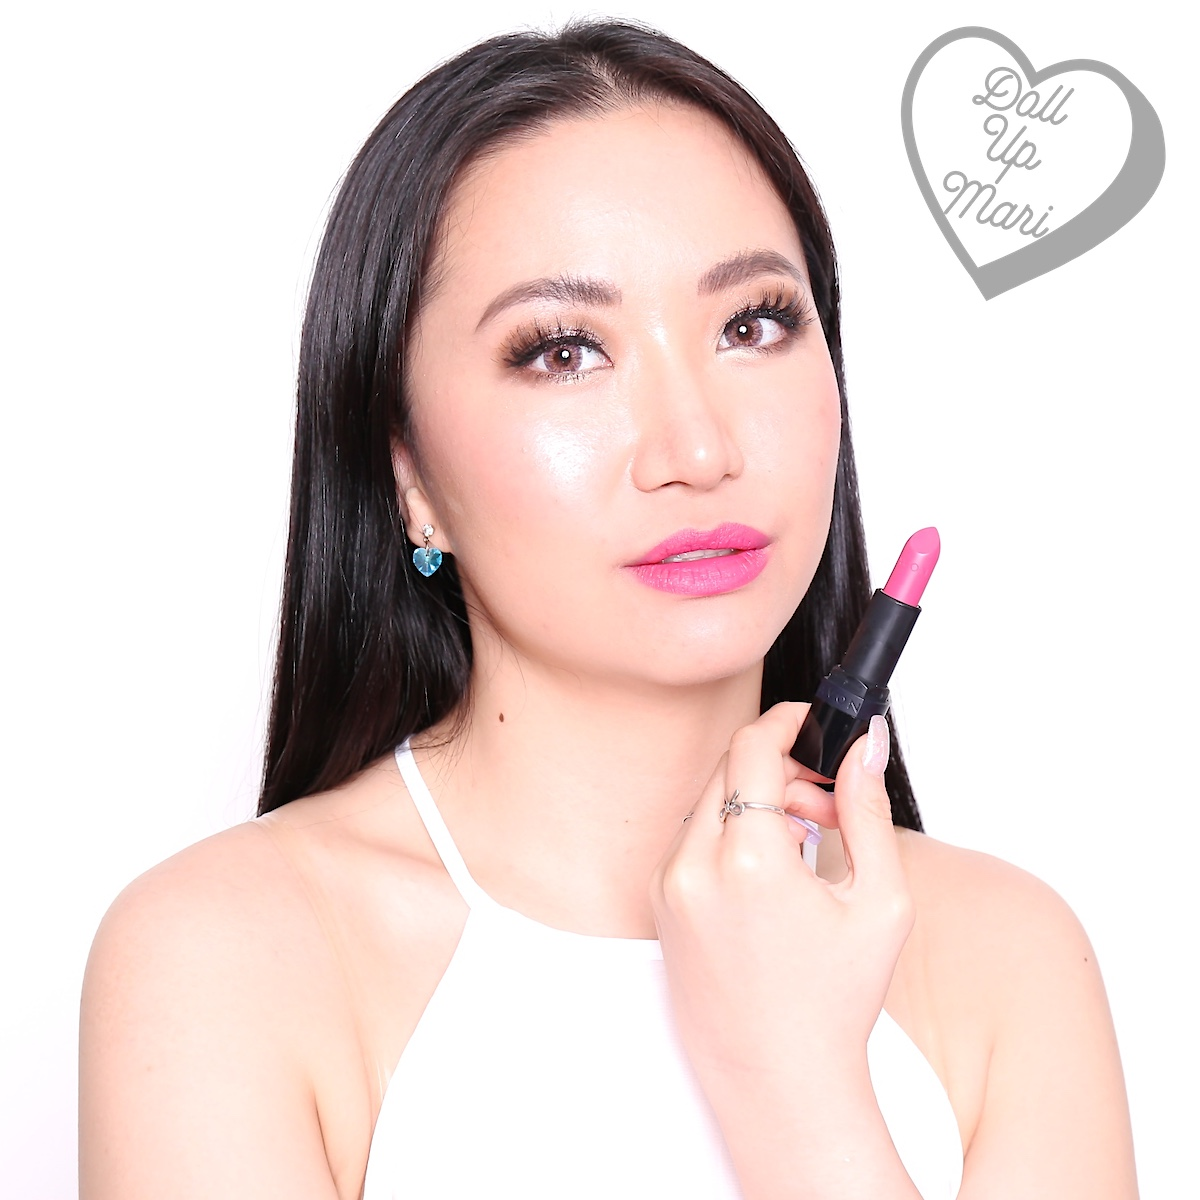 Wearing Adoring Love shade of AVON Perfectly Matte Lipstick